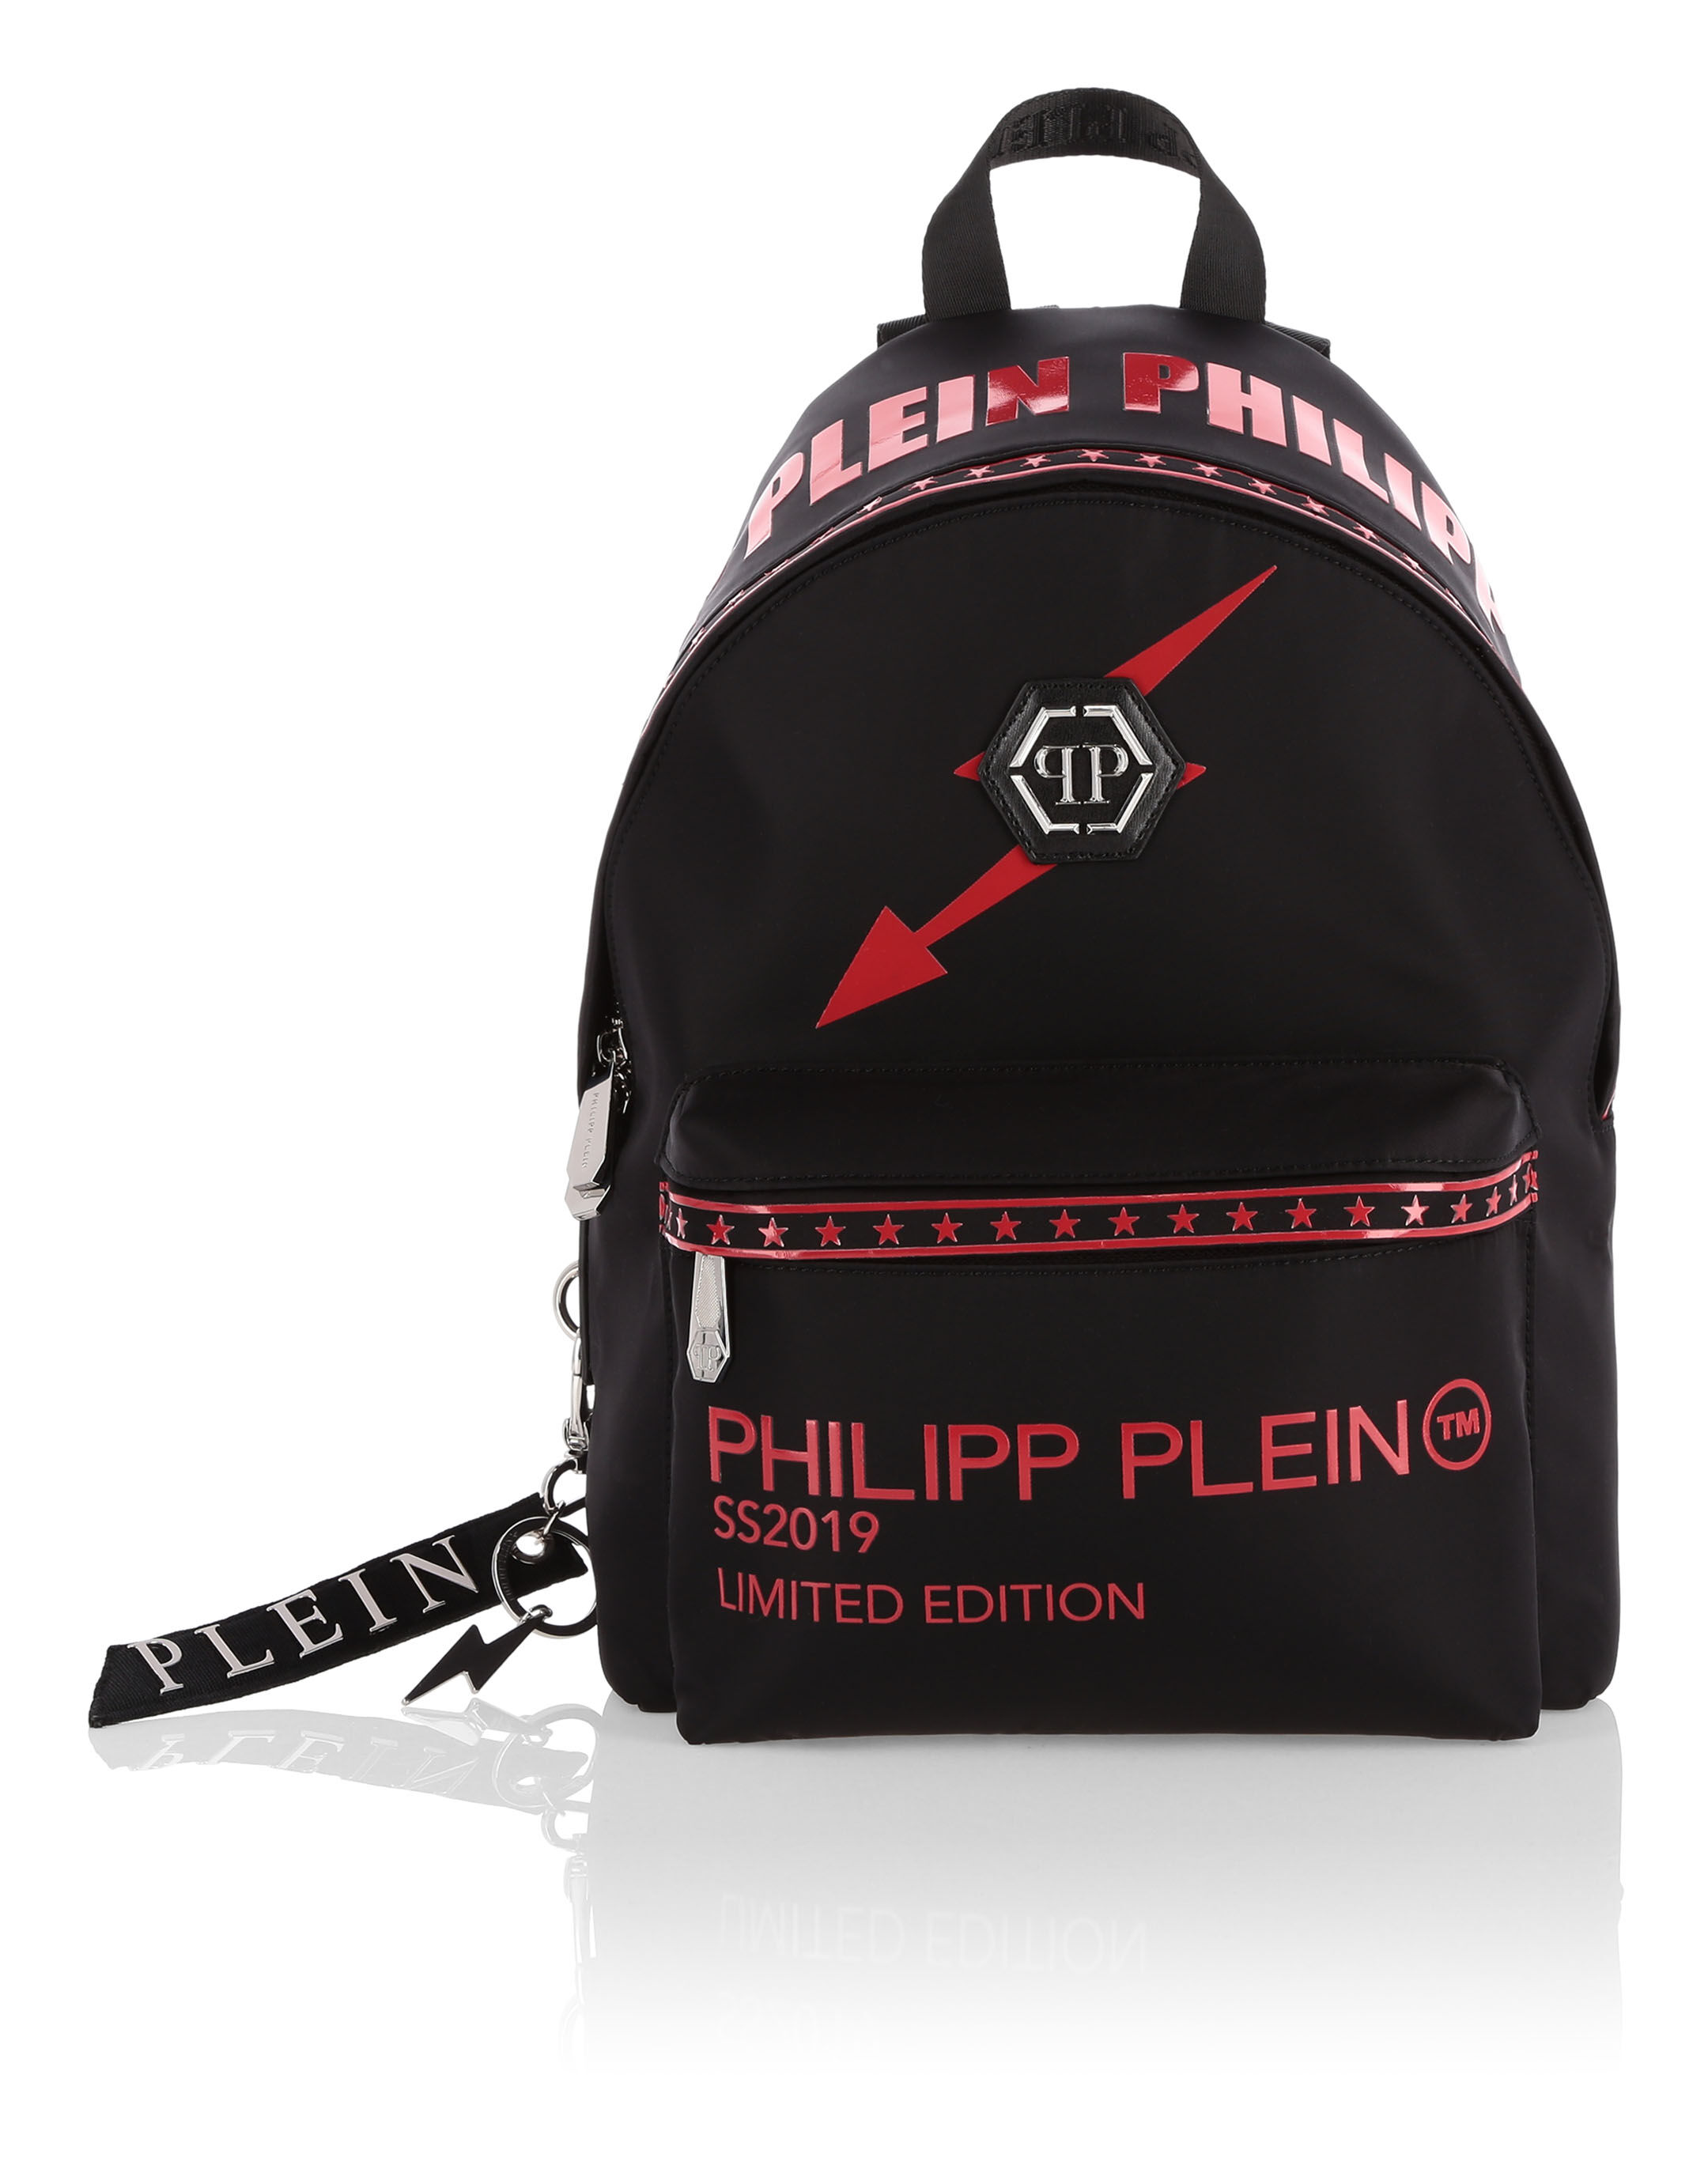 Plein Backpacks Backpacks Plein Philipp Men's Plein Philipp Men's Philipp Men's Philipp Backpacks Backpacks Plein Men's pMATq6K